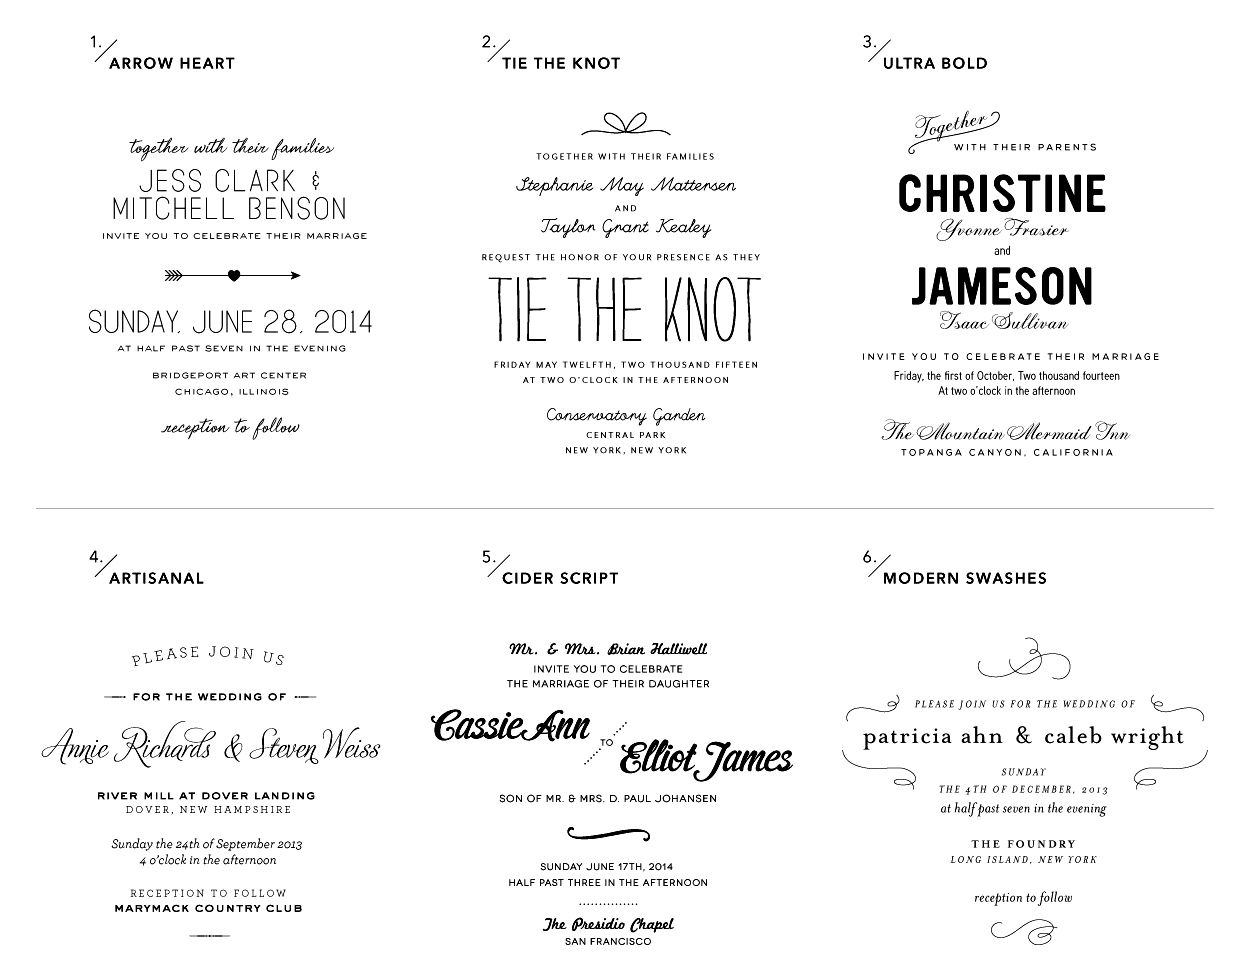 Whimsical wedding invitation wording view all 6 type styles whimsical wedding invitation wording view all 6 type styles stopboris Gallery